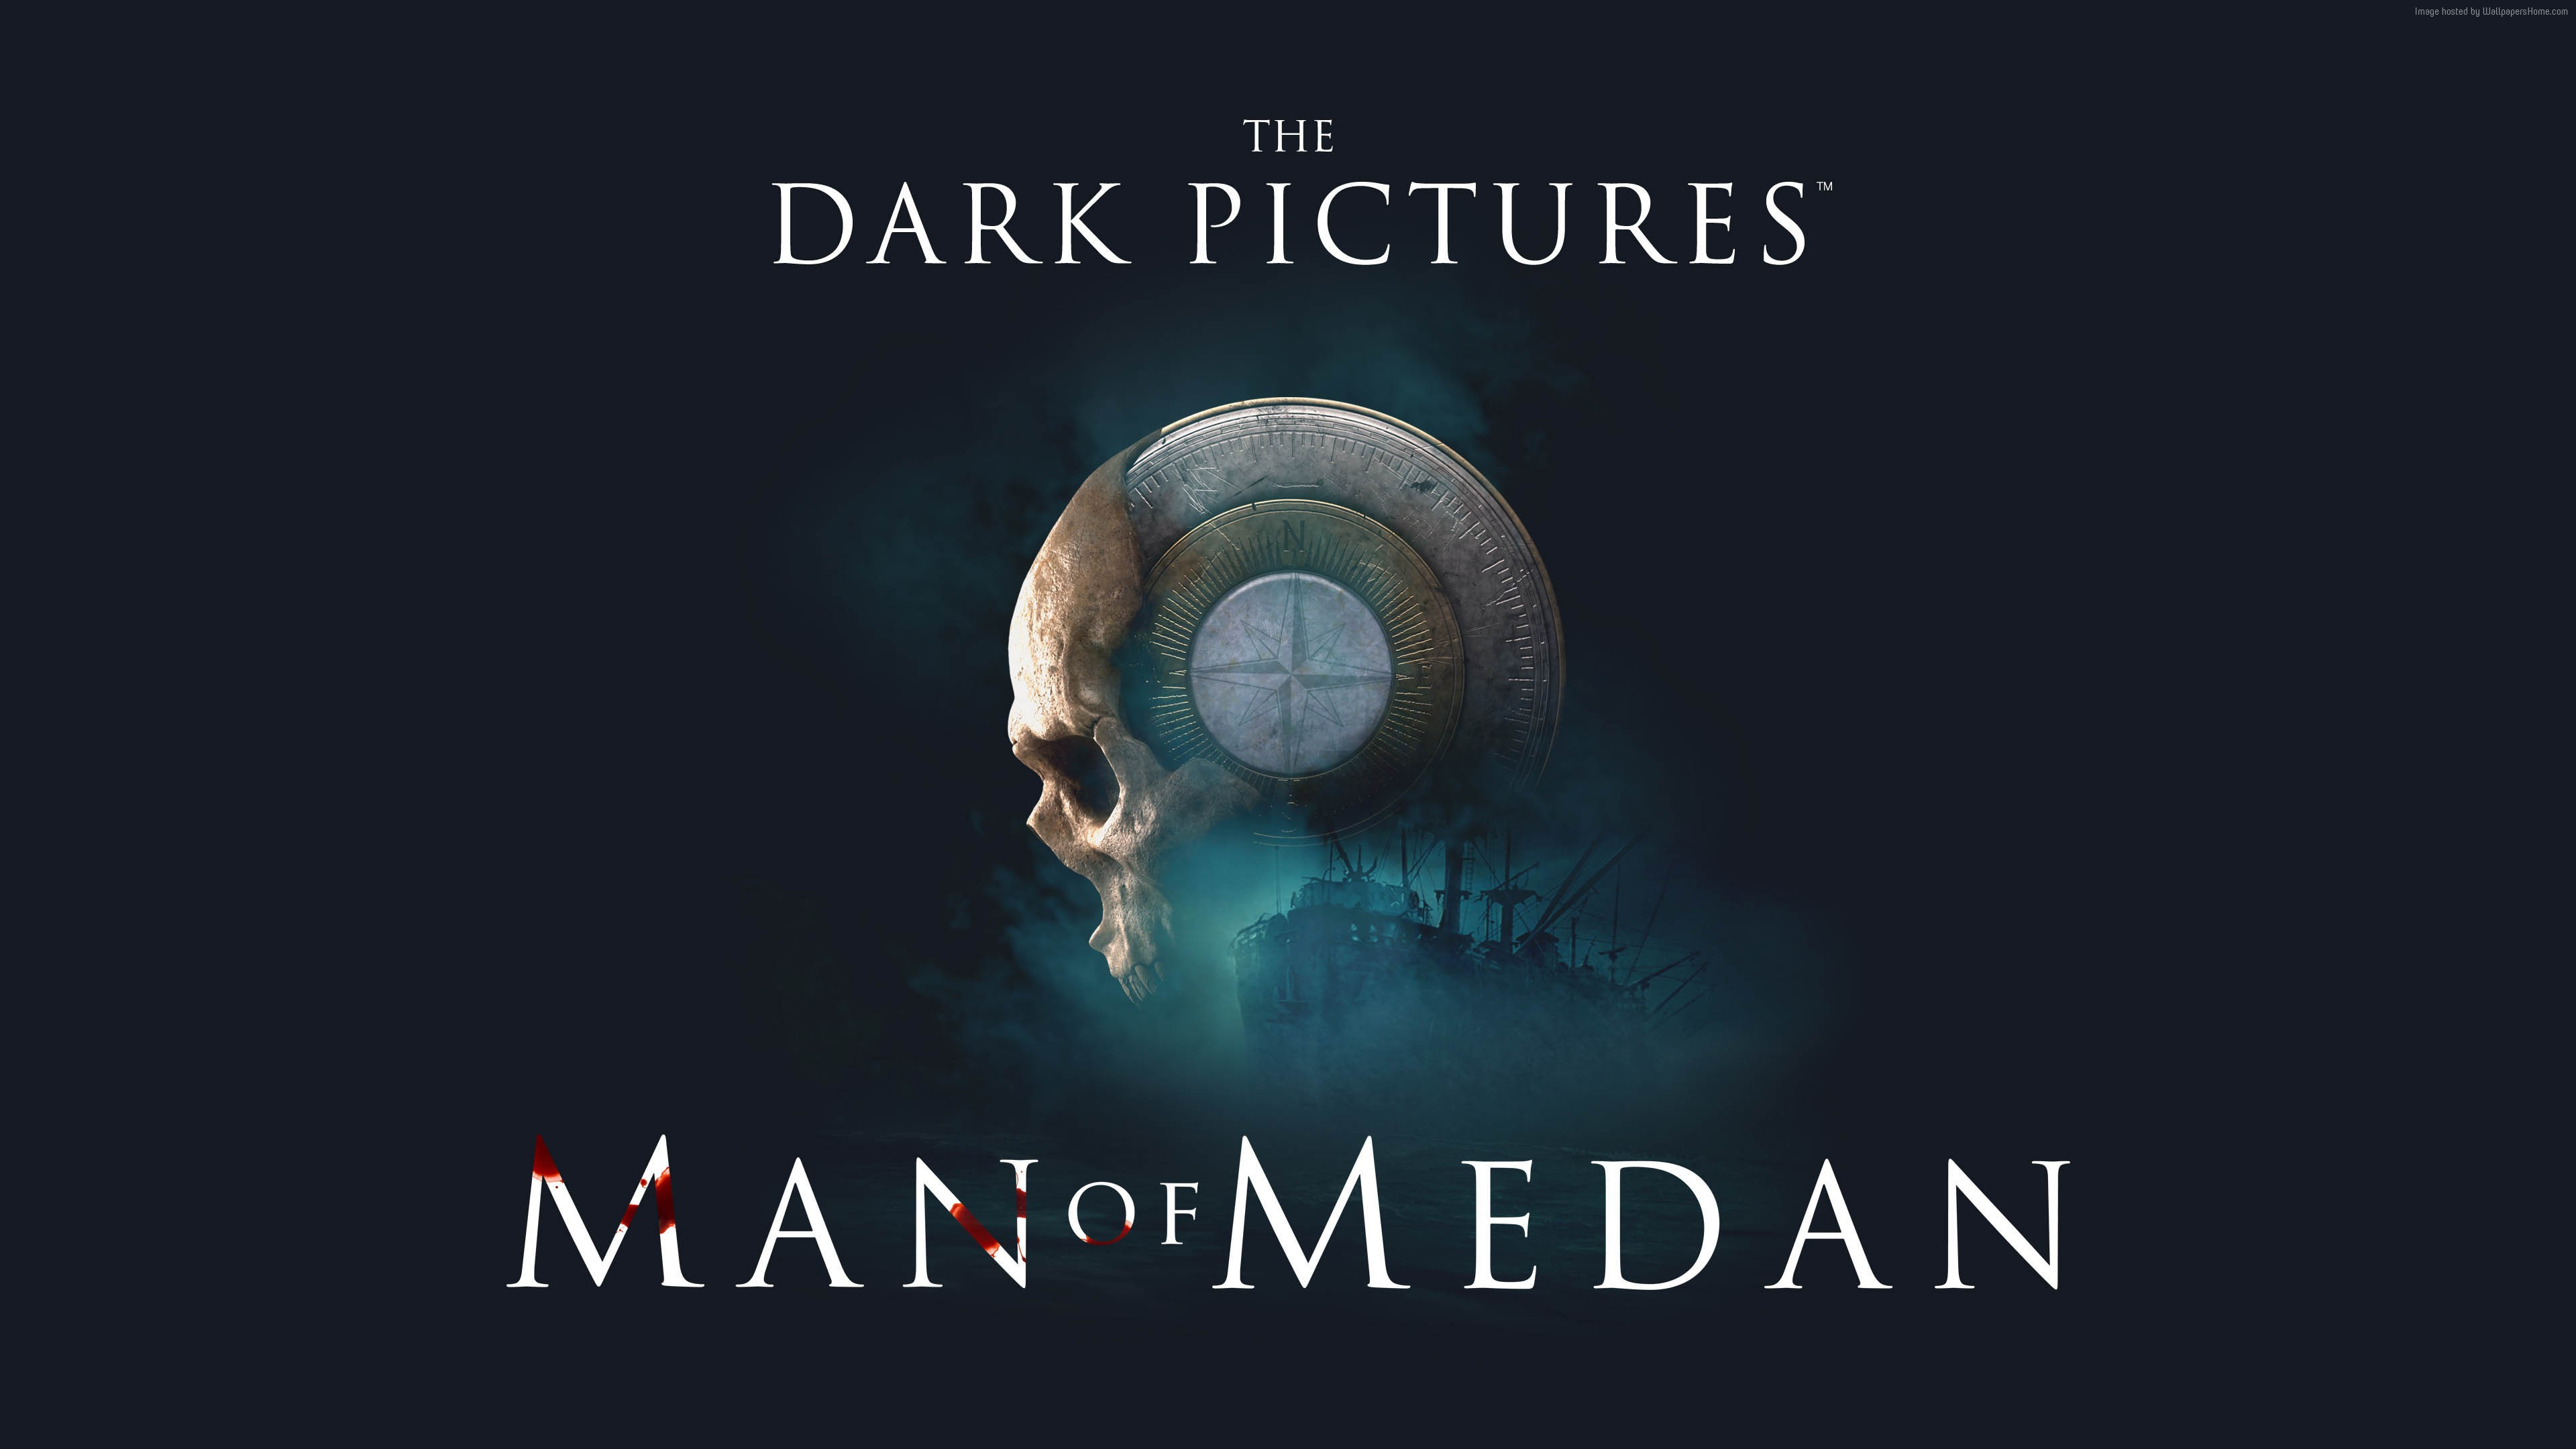 Wallpaper The Dark Pictures – Man of Medan, Gamescom 2018, poster, 4K, Games